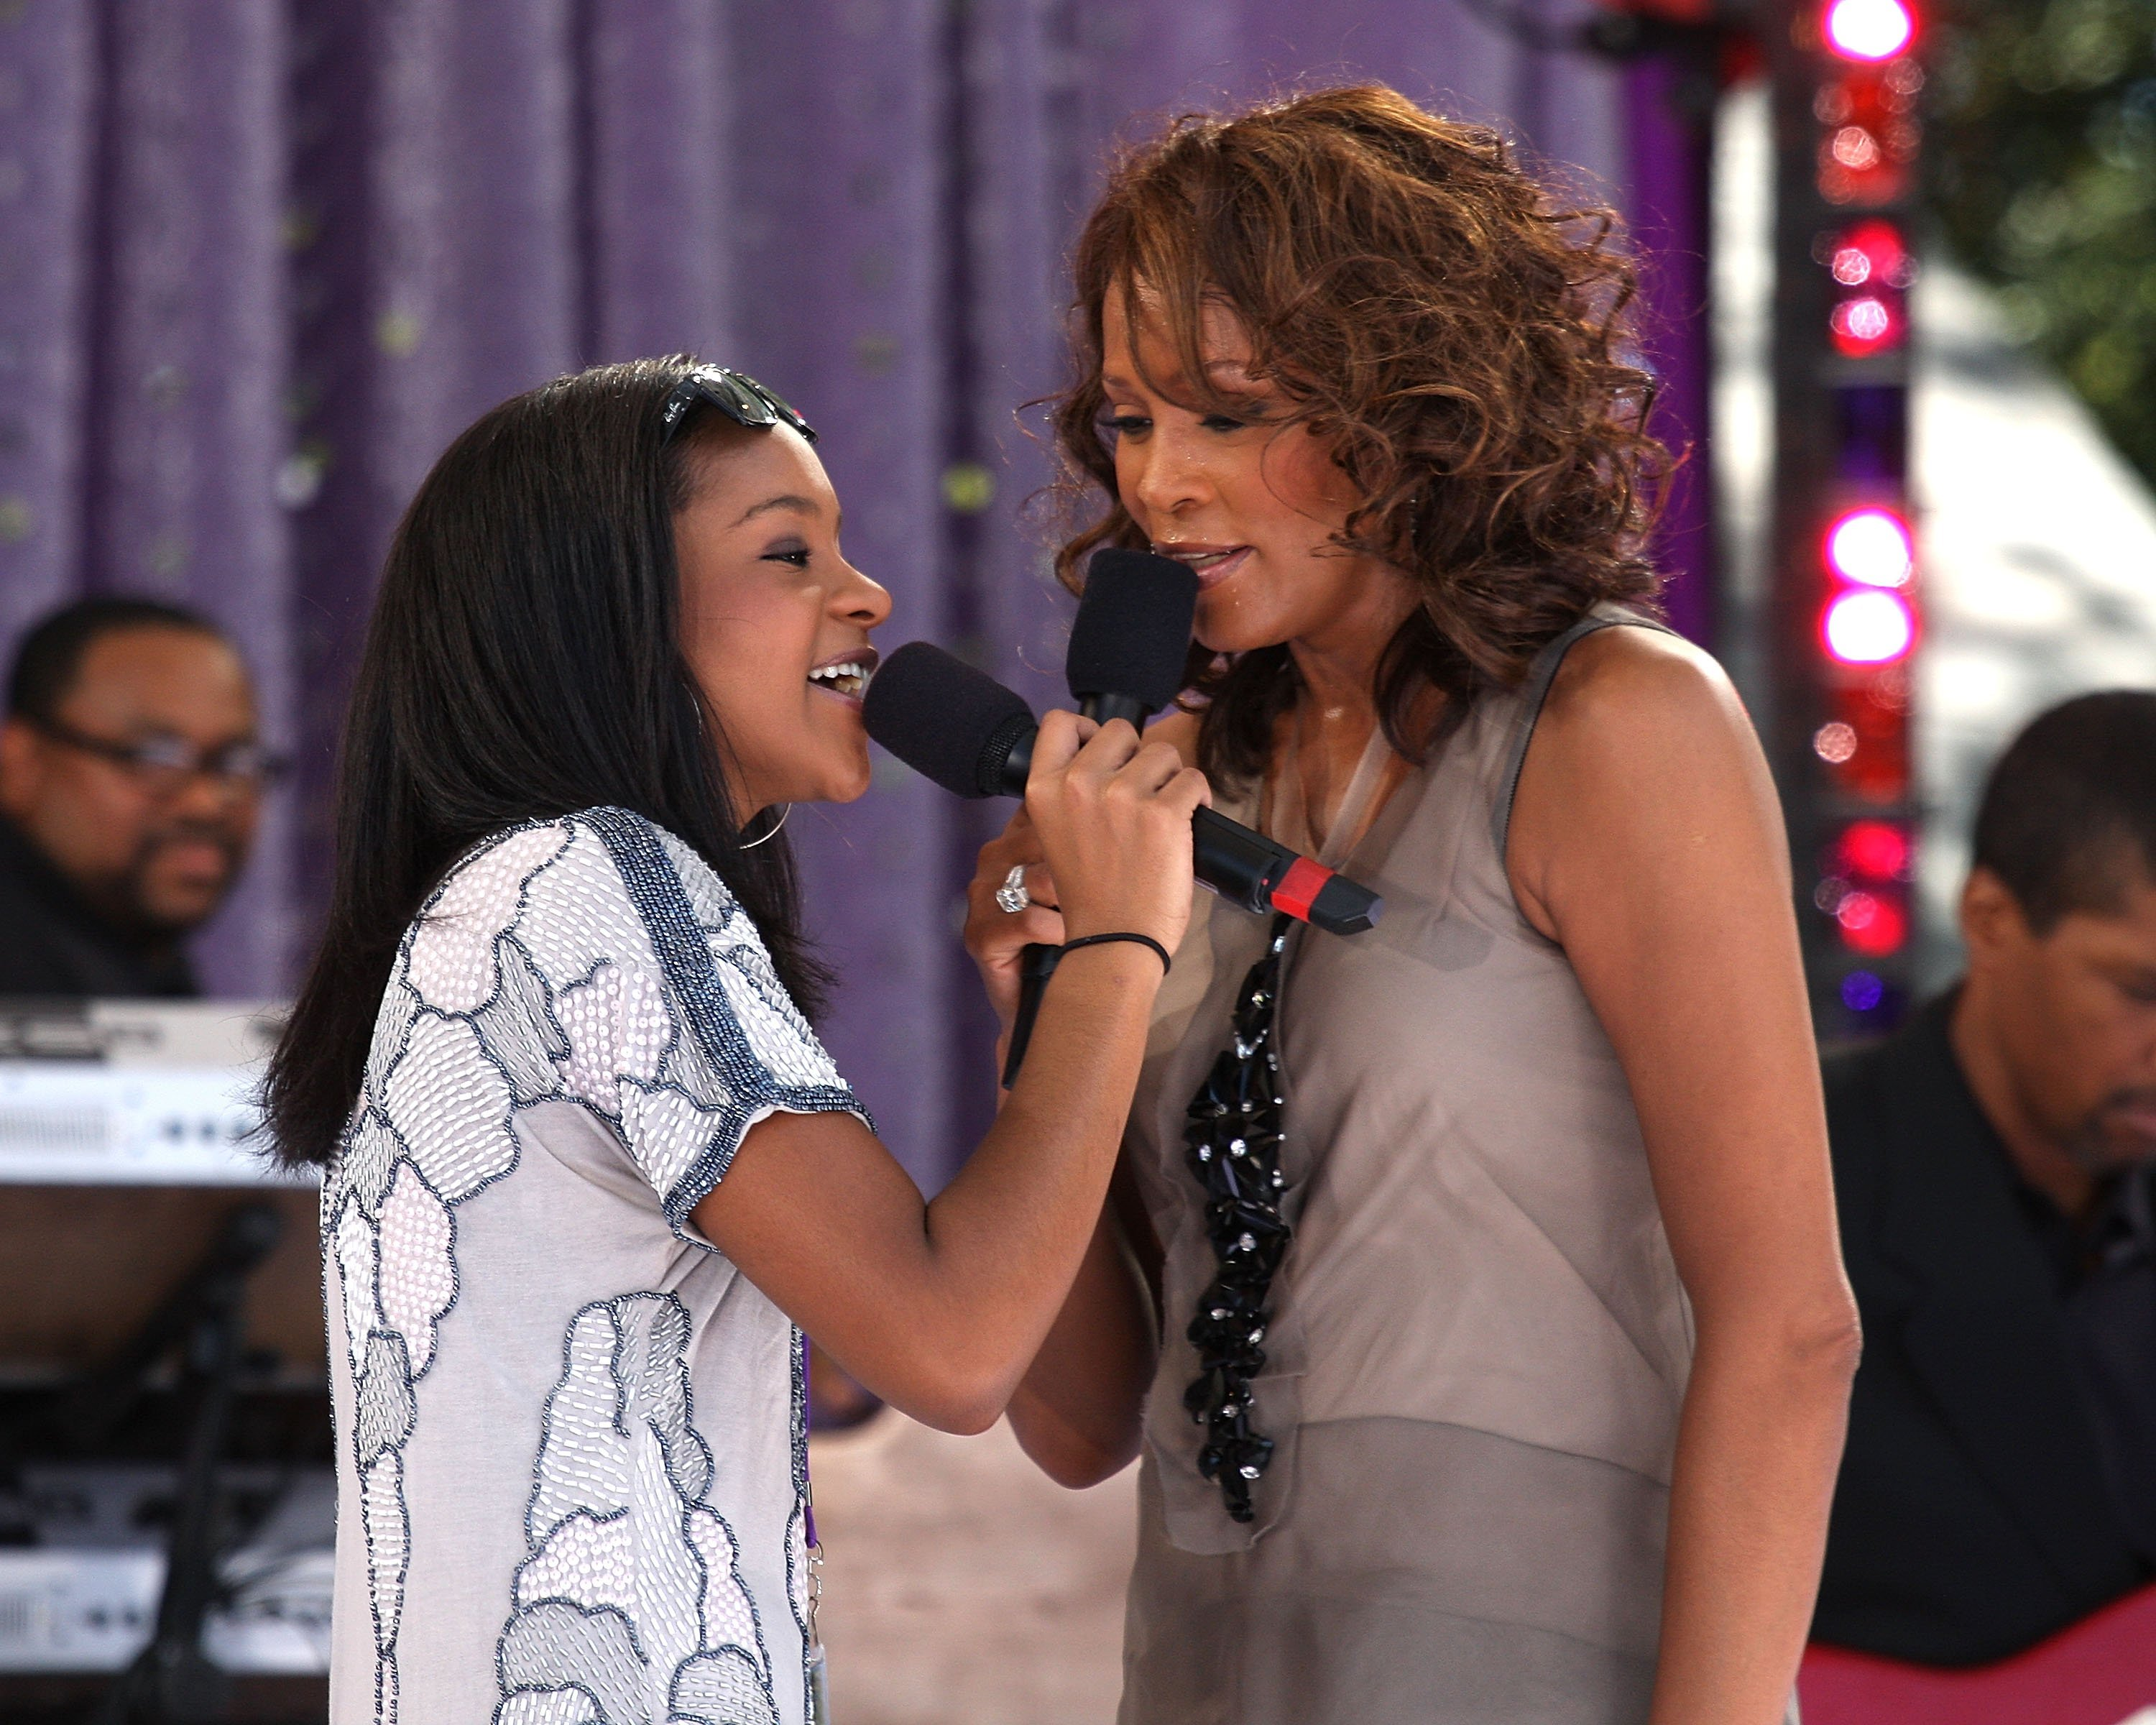 Bobbi Kristina Brown & Whitney Houston perform in Central Park on Sept. 1, 2009 in New York City | Photo: Getty Images